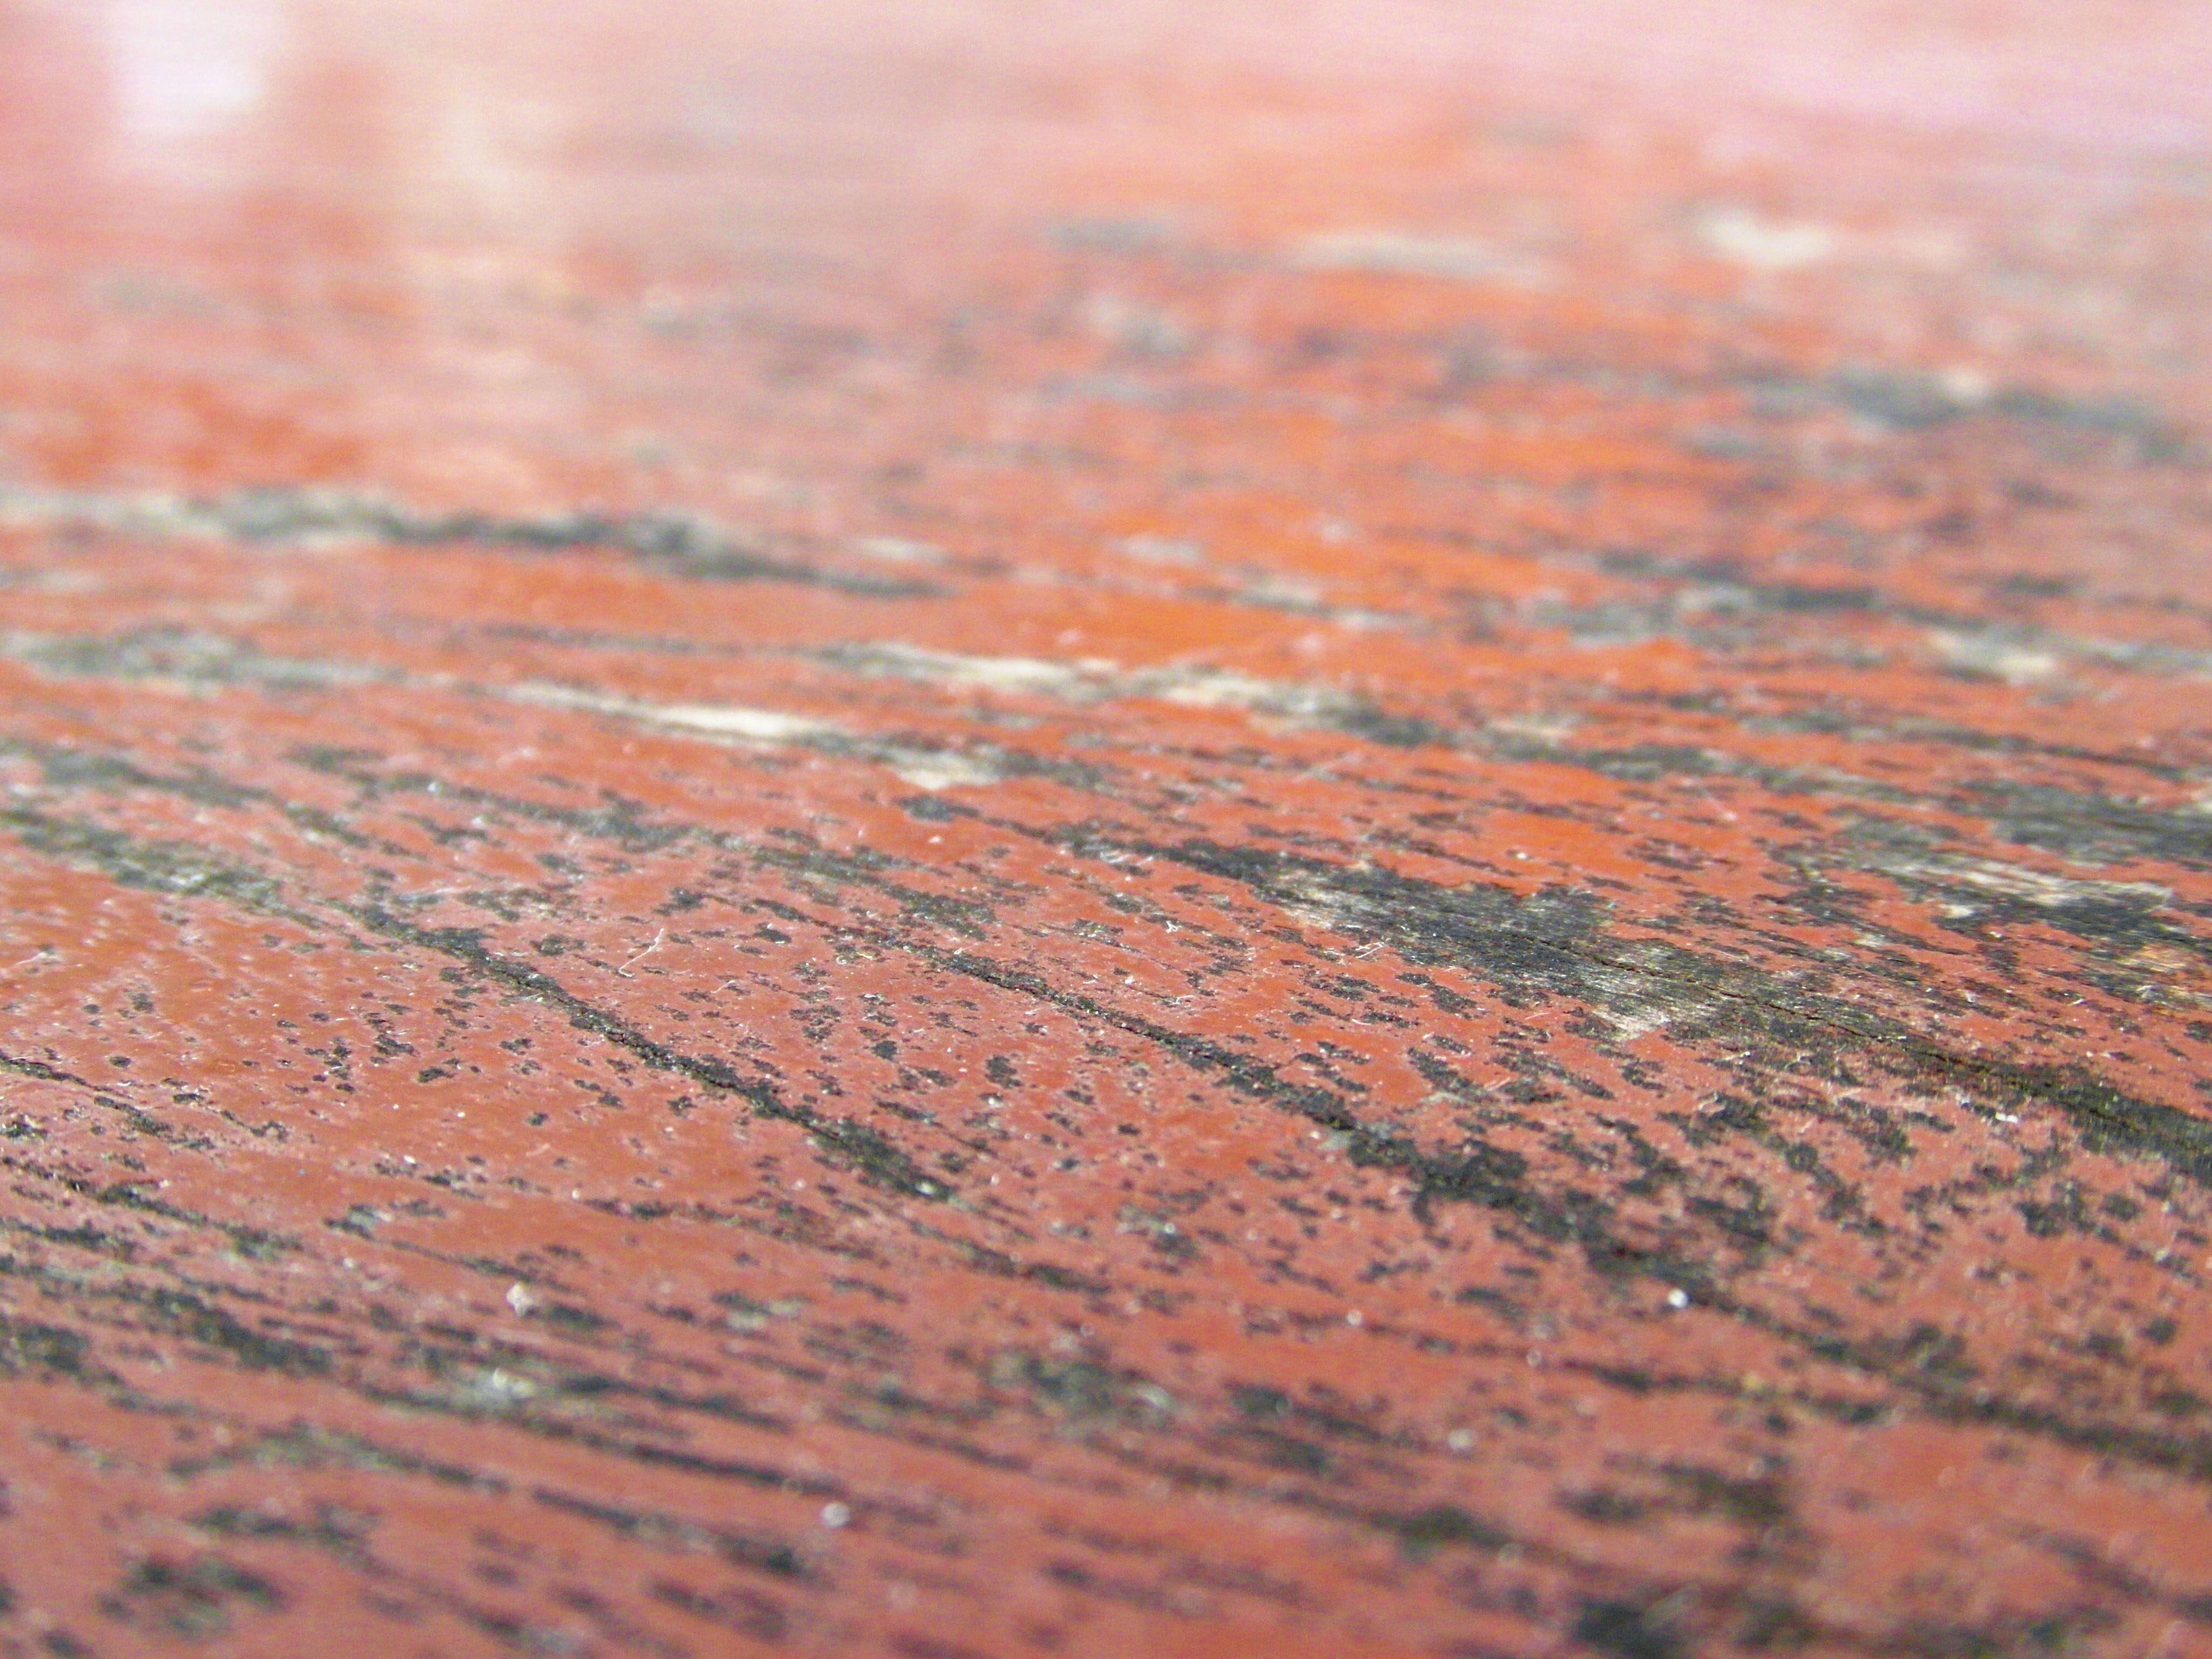 Wooden Surface Background, Worn, Scratched, Wooden, Wood, HQ Photo